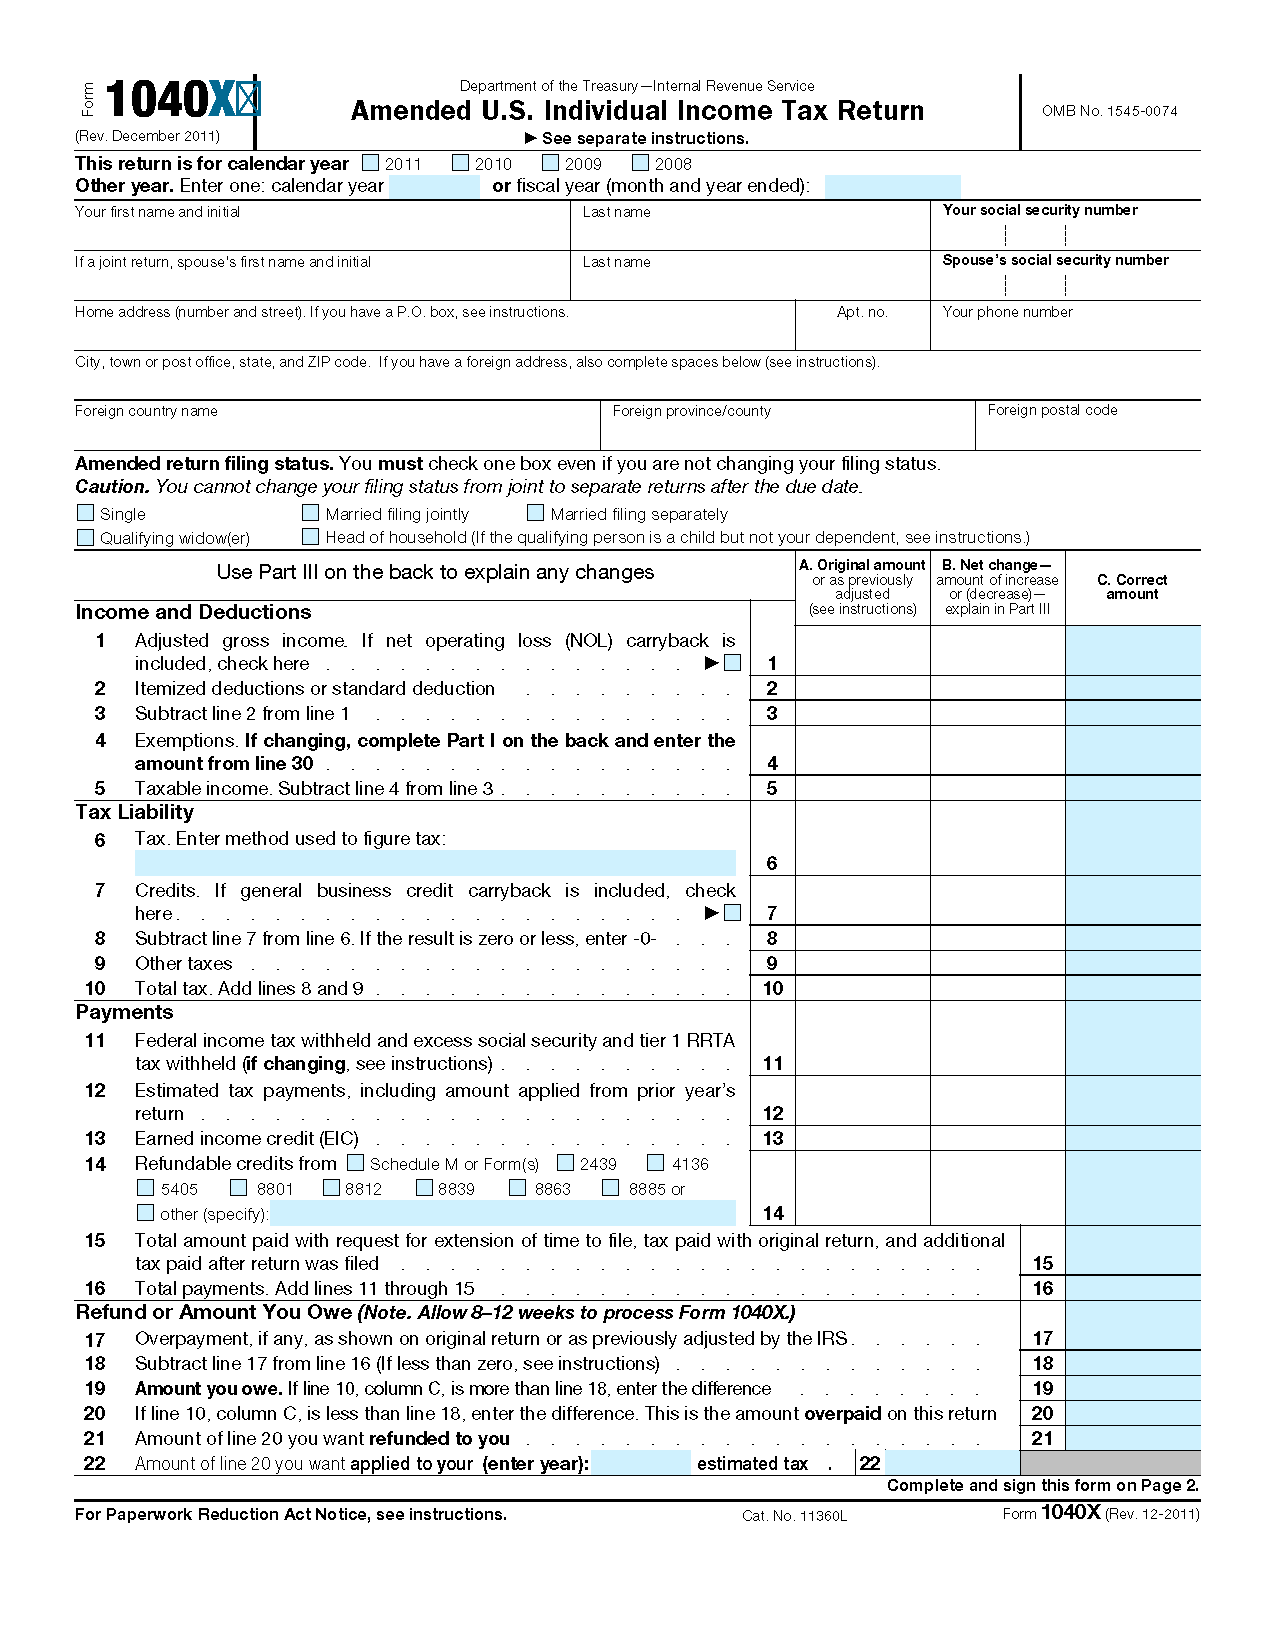 Form 1040-X Amended U.S. Individual Income Tax Return